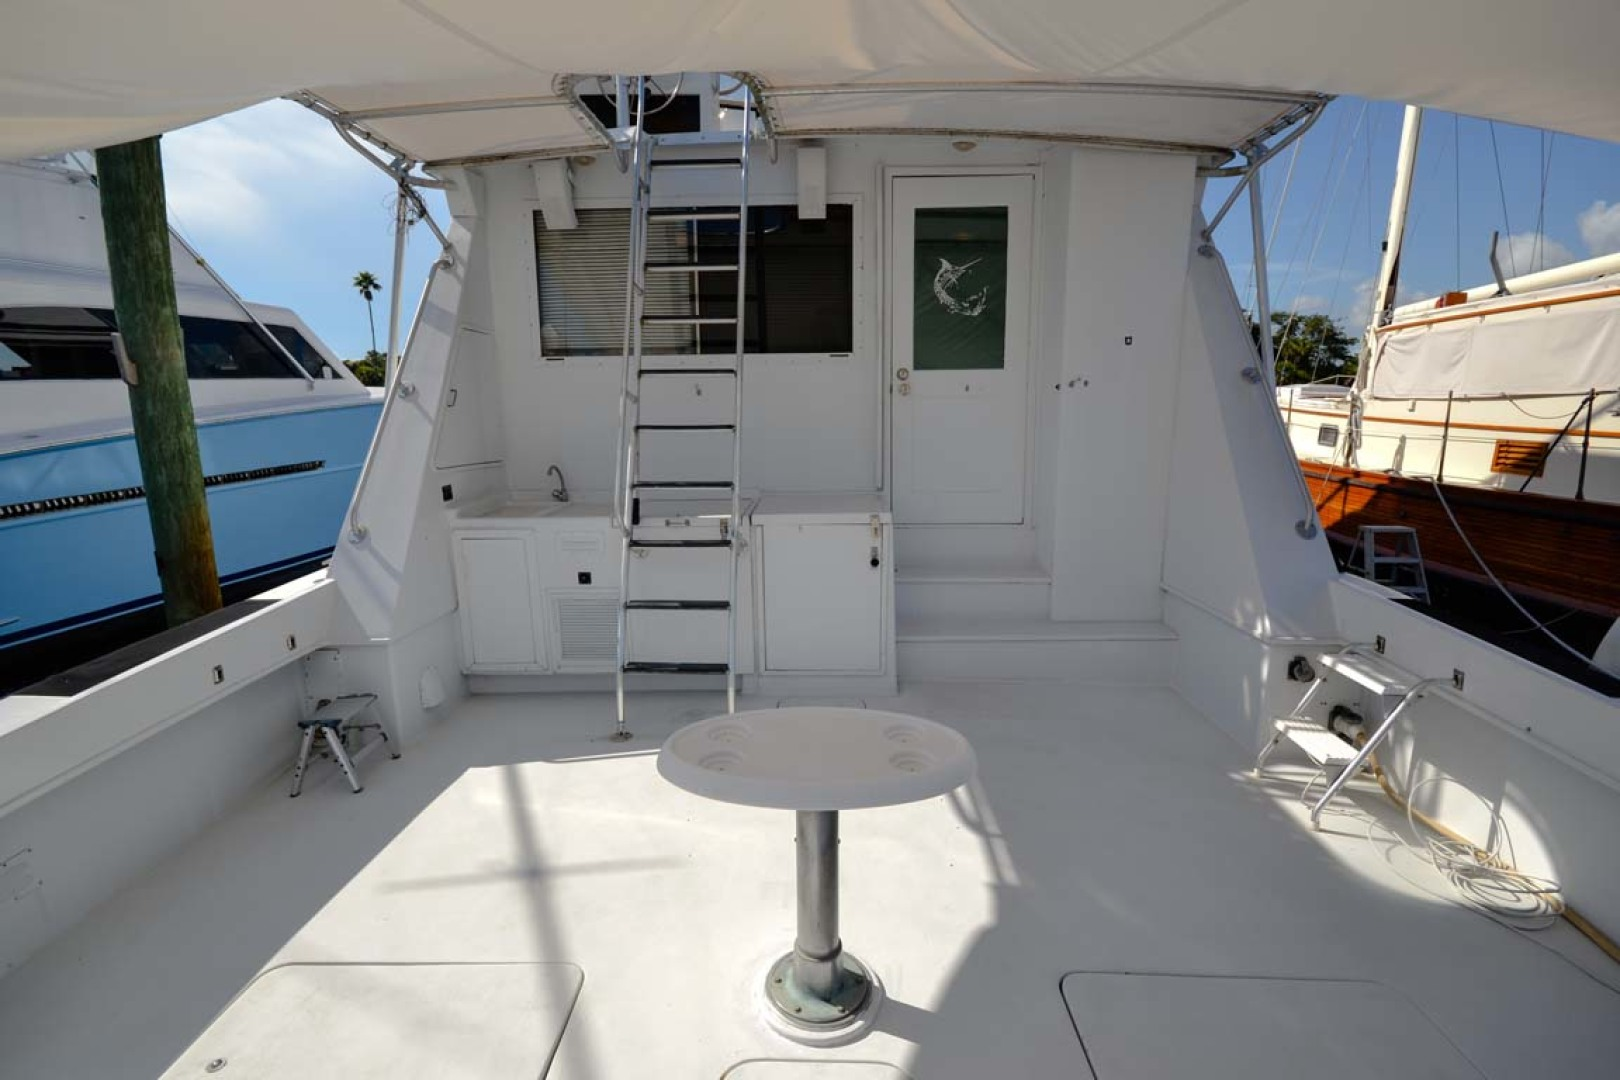 Hatteras-60 Flybridge 1979-Sea Horse Daytona Beach-Florida-United States-Cockpit-1183209 | Thumbnail